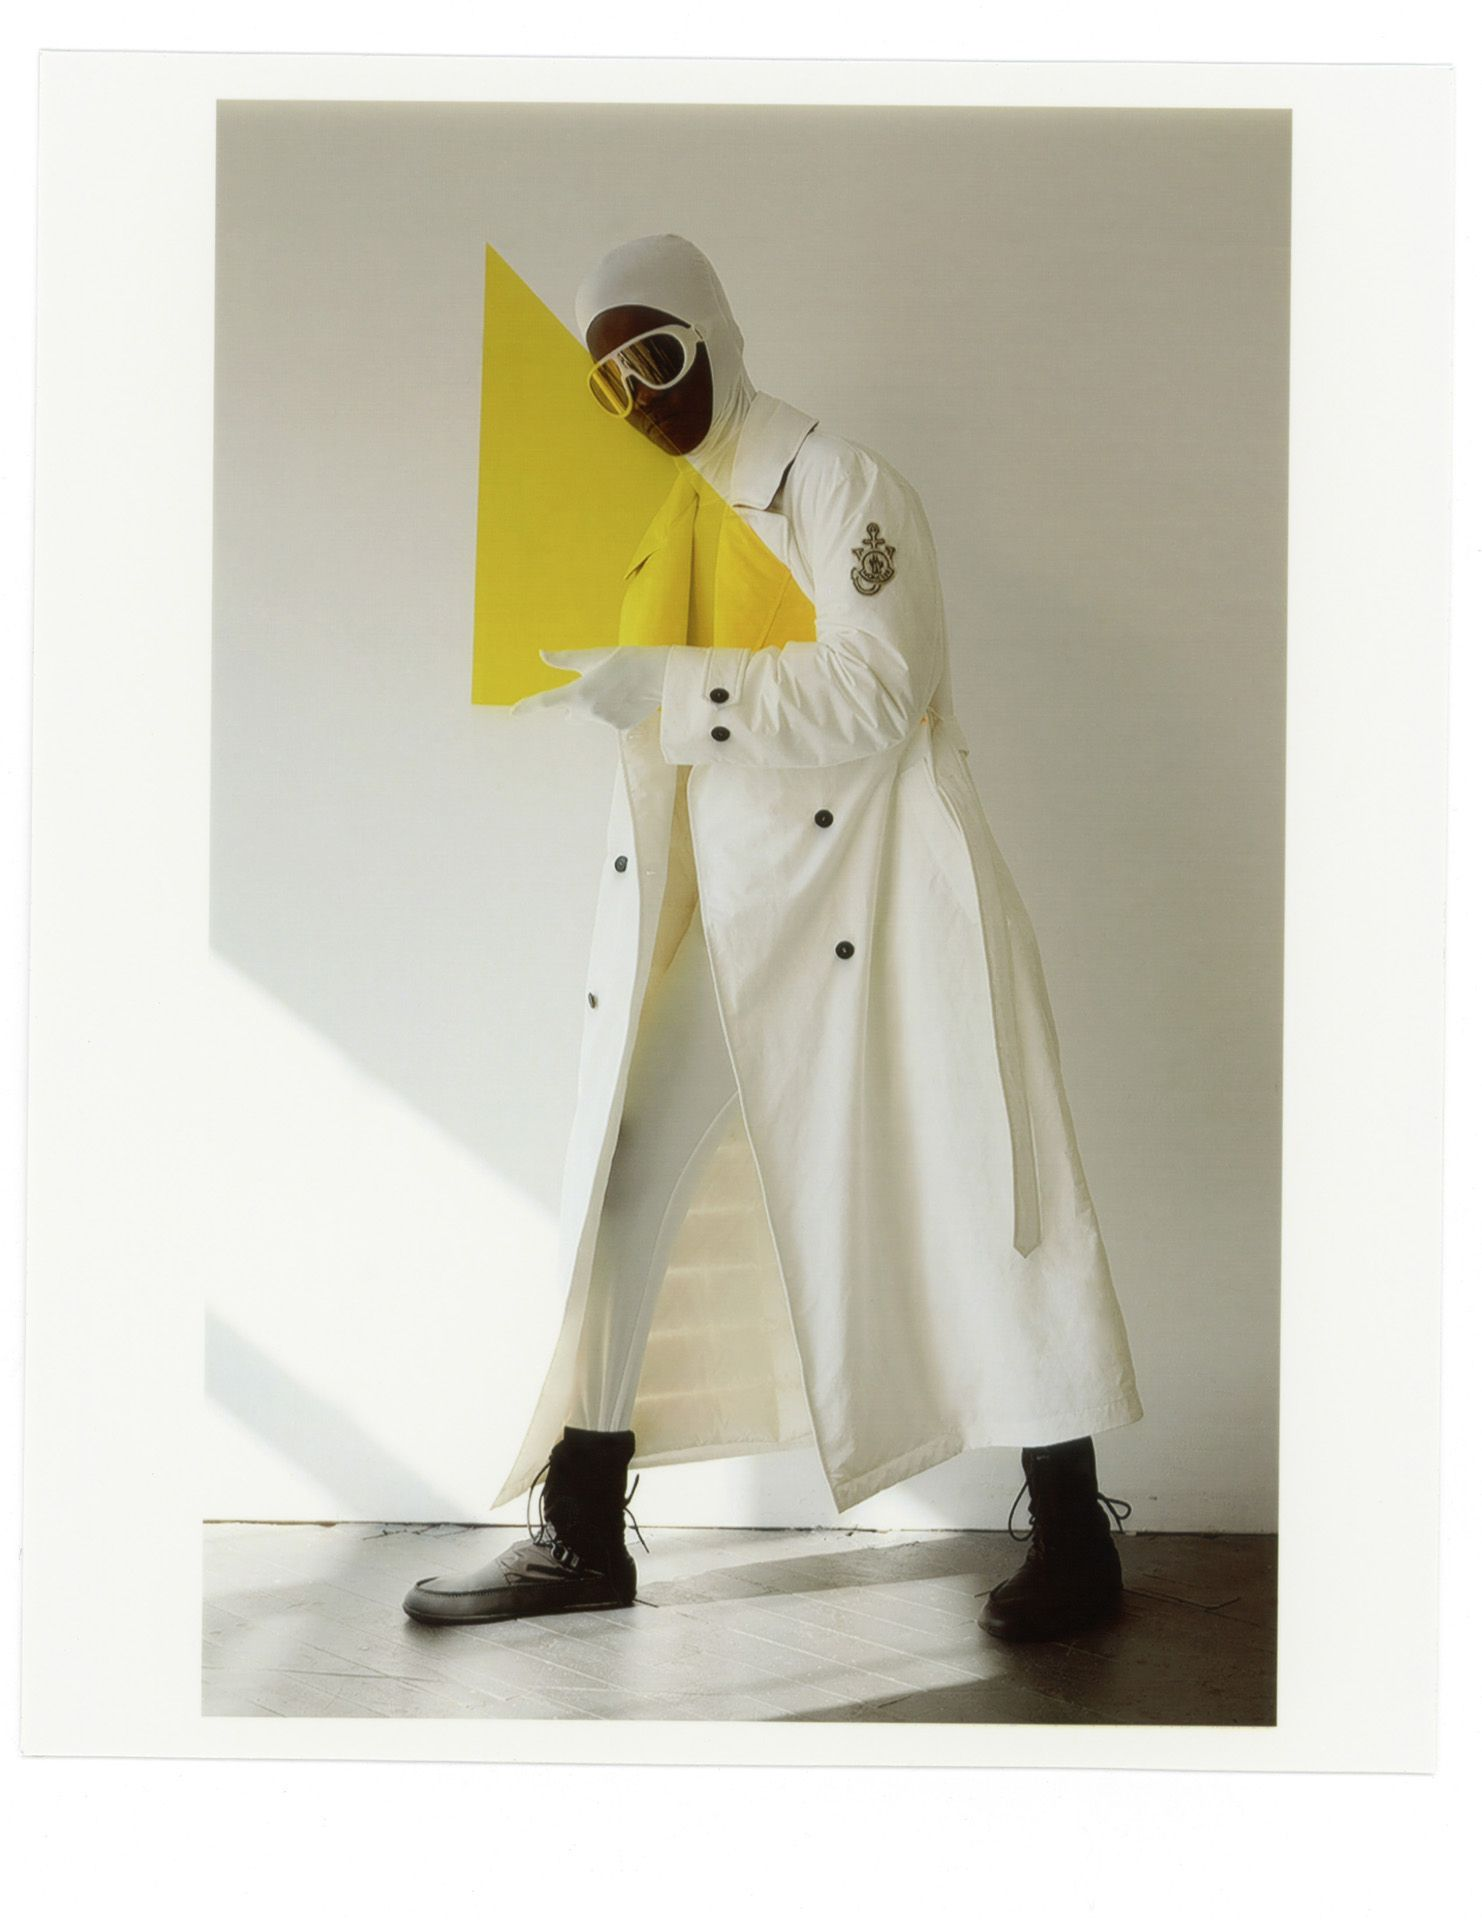 black female model wearing long white coat white sunglasses and white balaclava holding yellow acrylic triangle with one arm photographed by Oumayma B Tanfous for Moncler as a story for Document Journal magazine